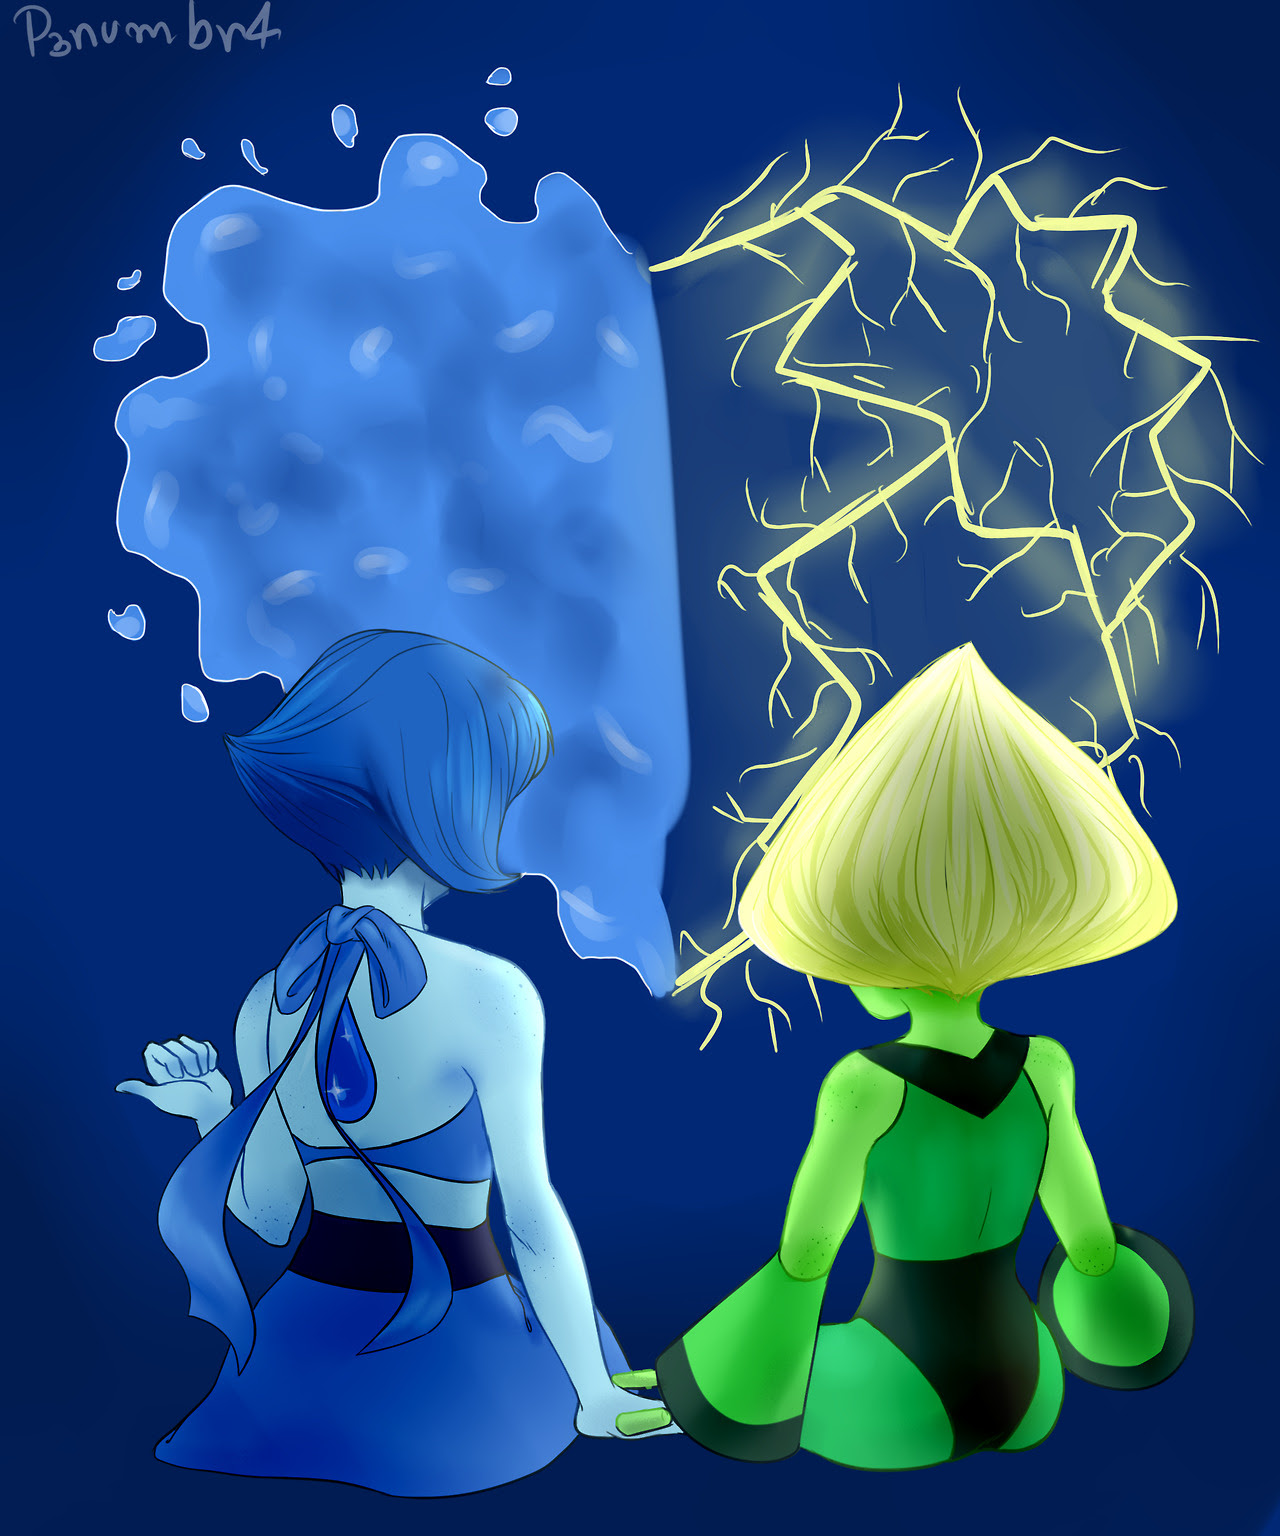 a really quick commisison I did for a friend of mine he asked as a b-day gift for a friend. tbh, I also ship Lapidot ♥